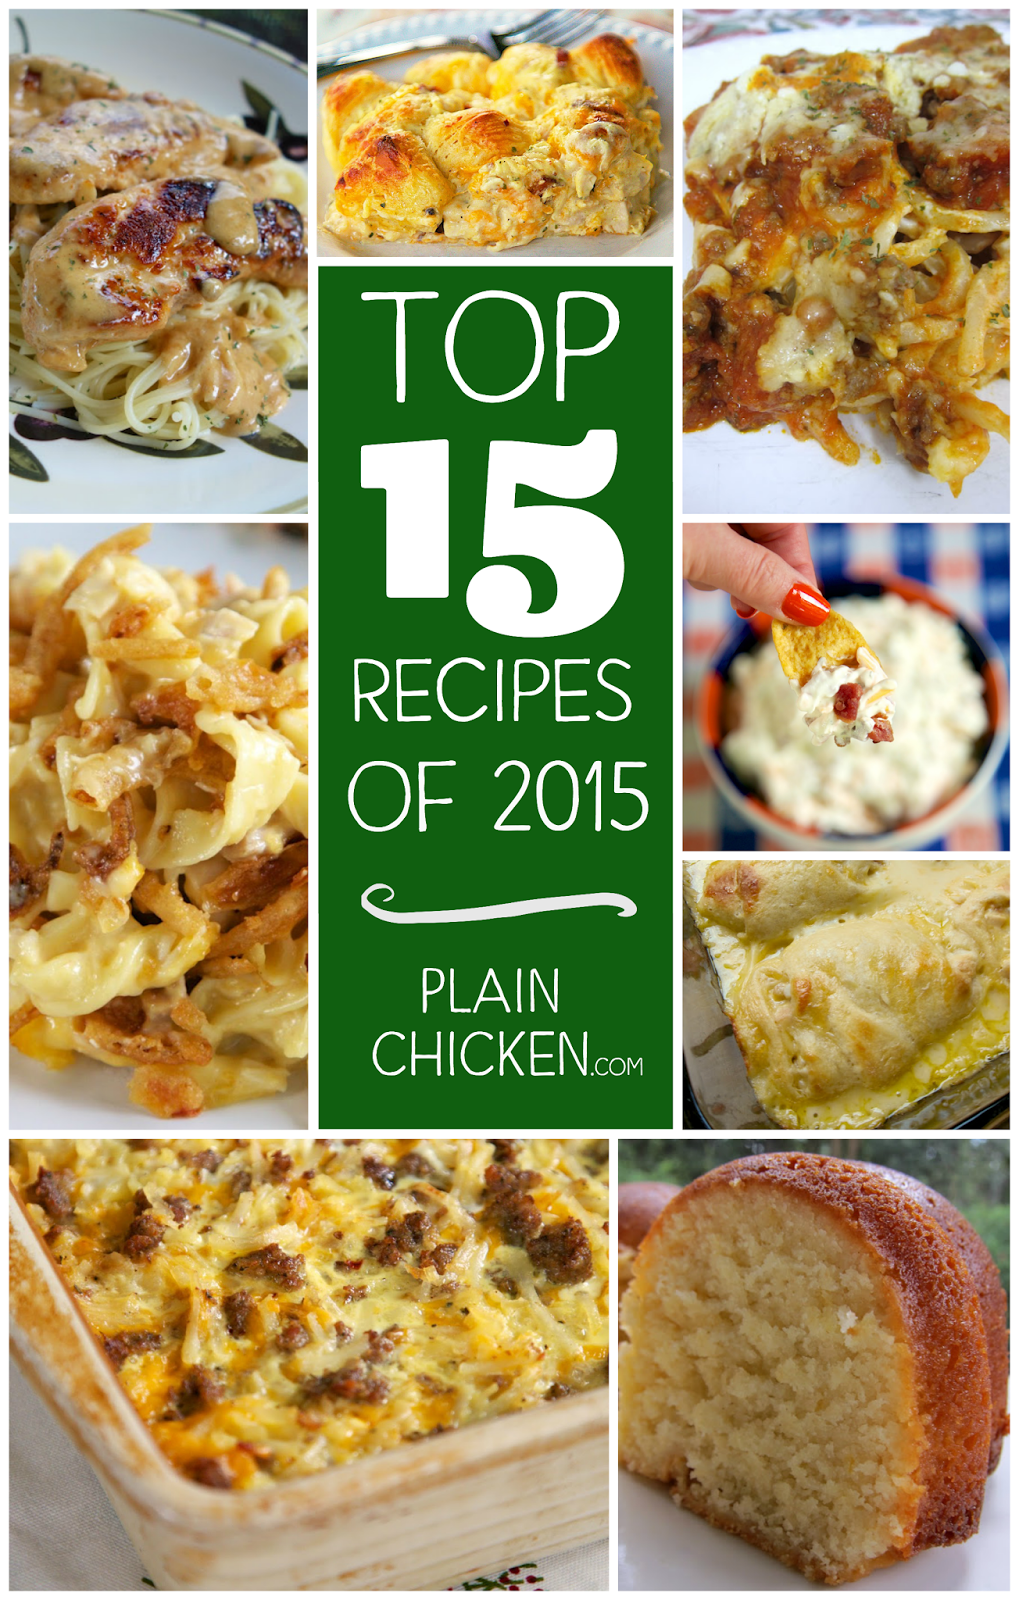 Top 15 Recipes of 2015 on PlainChicken.com - you don't want to miss this list! All of our favorite recipes are on this list!! Quick, easy, kid-friendly and delicious!